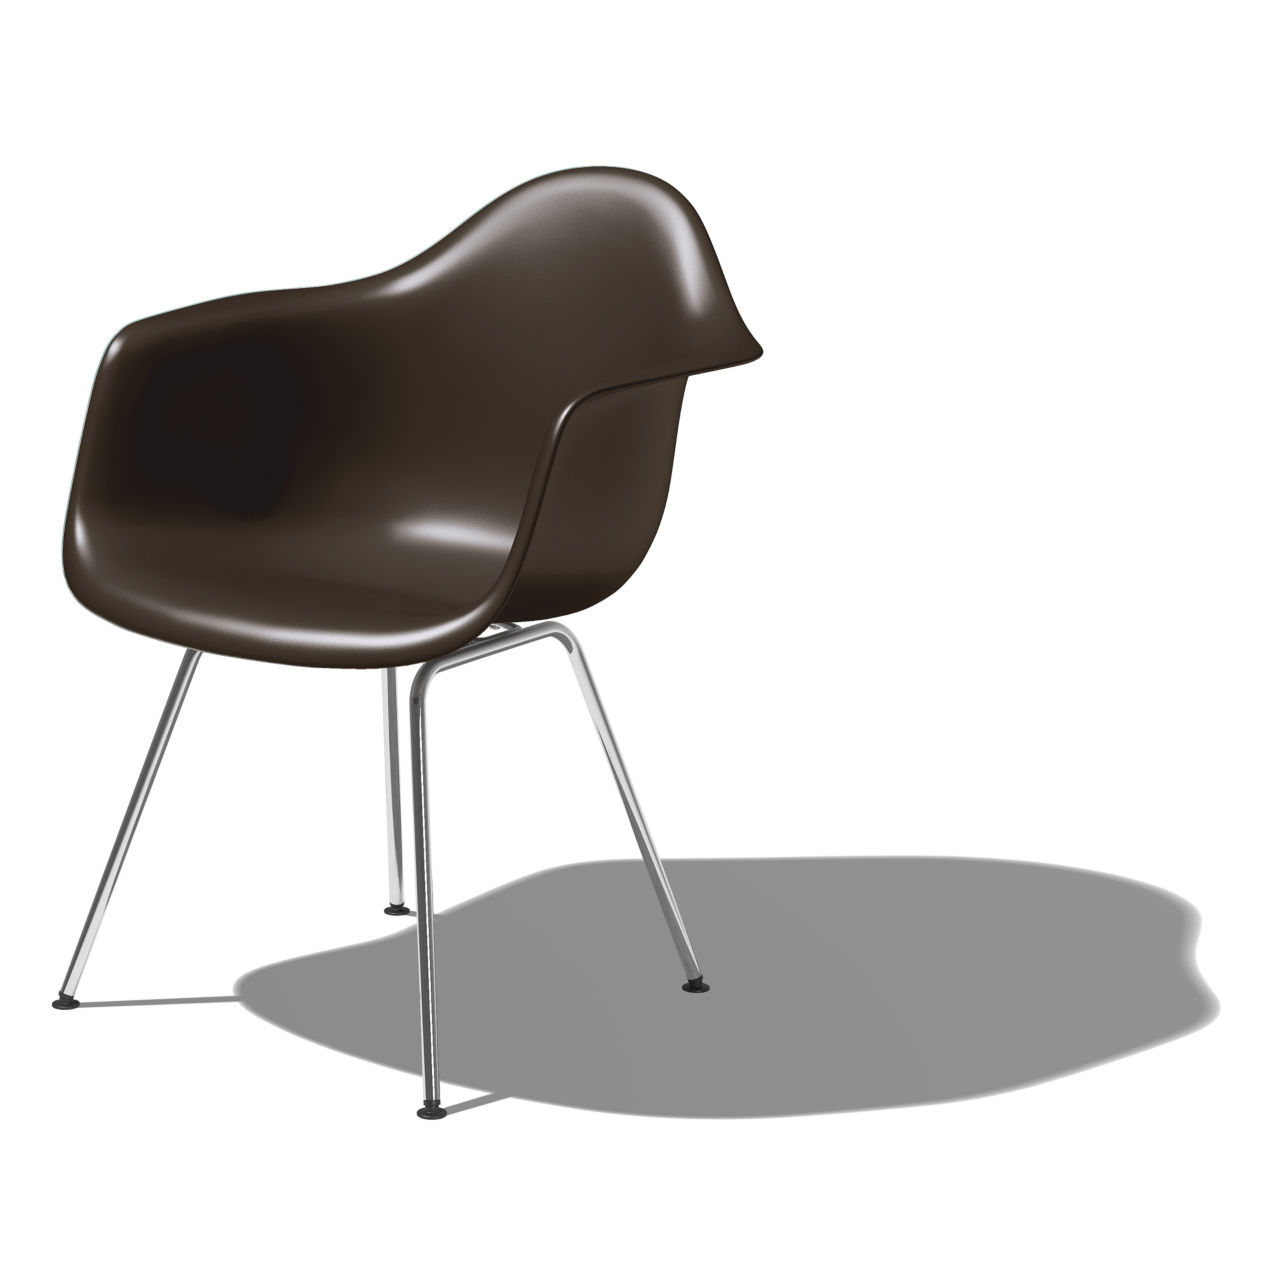 Eames Molded Plastic Armchair with 4 Leg Base in Java by Herman Miller